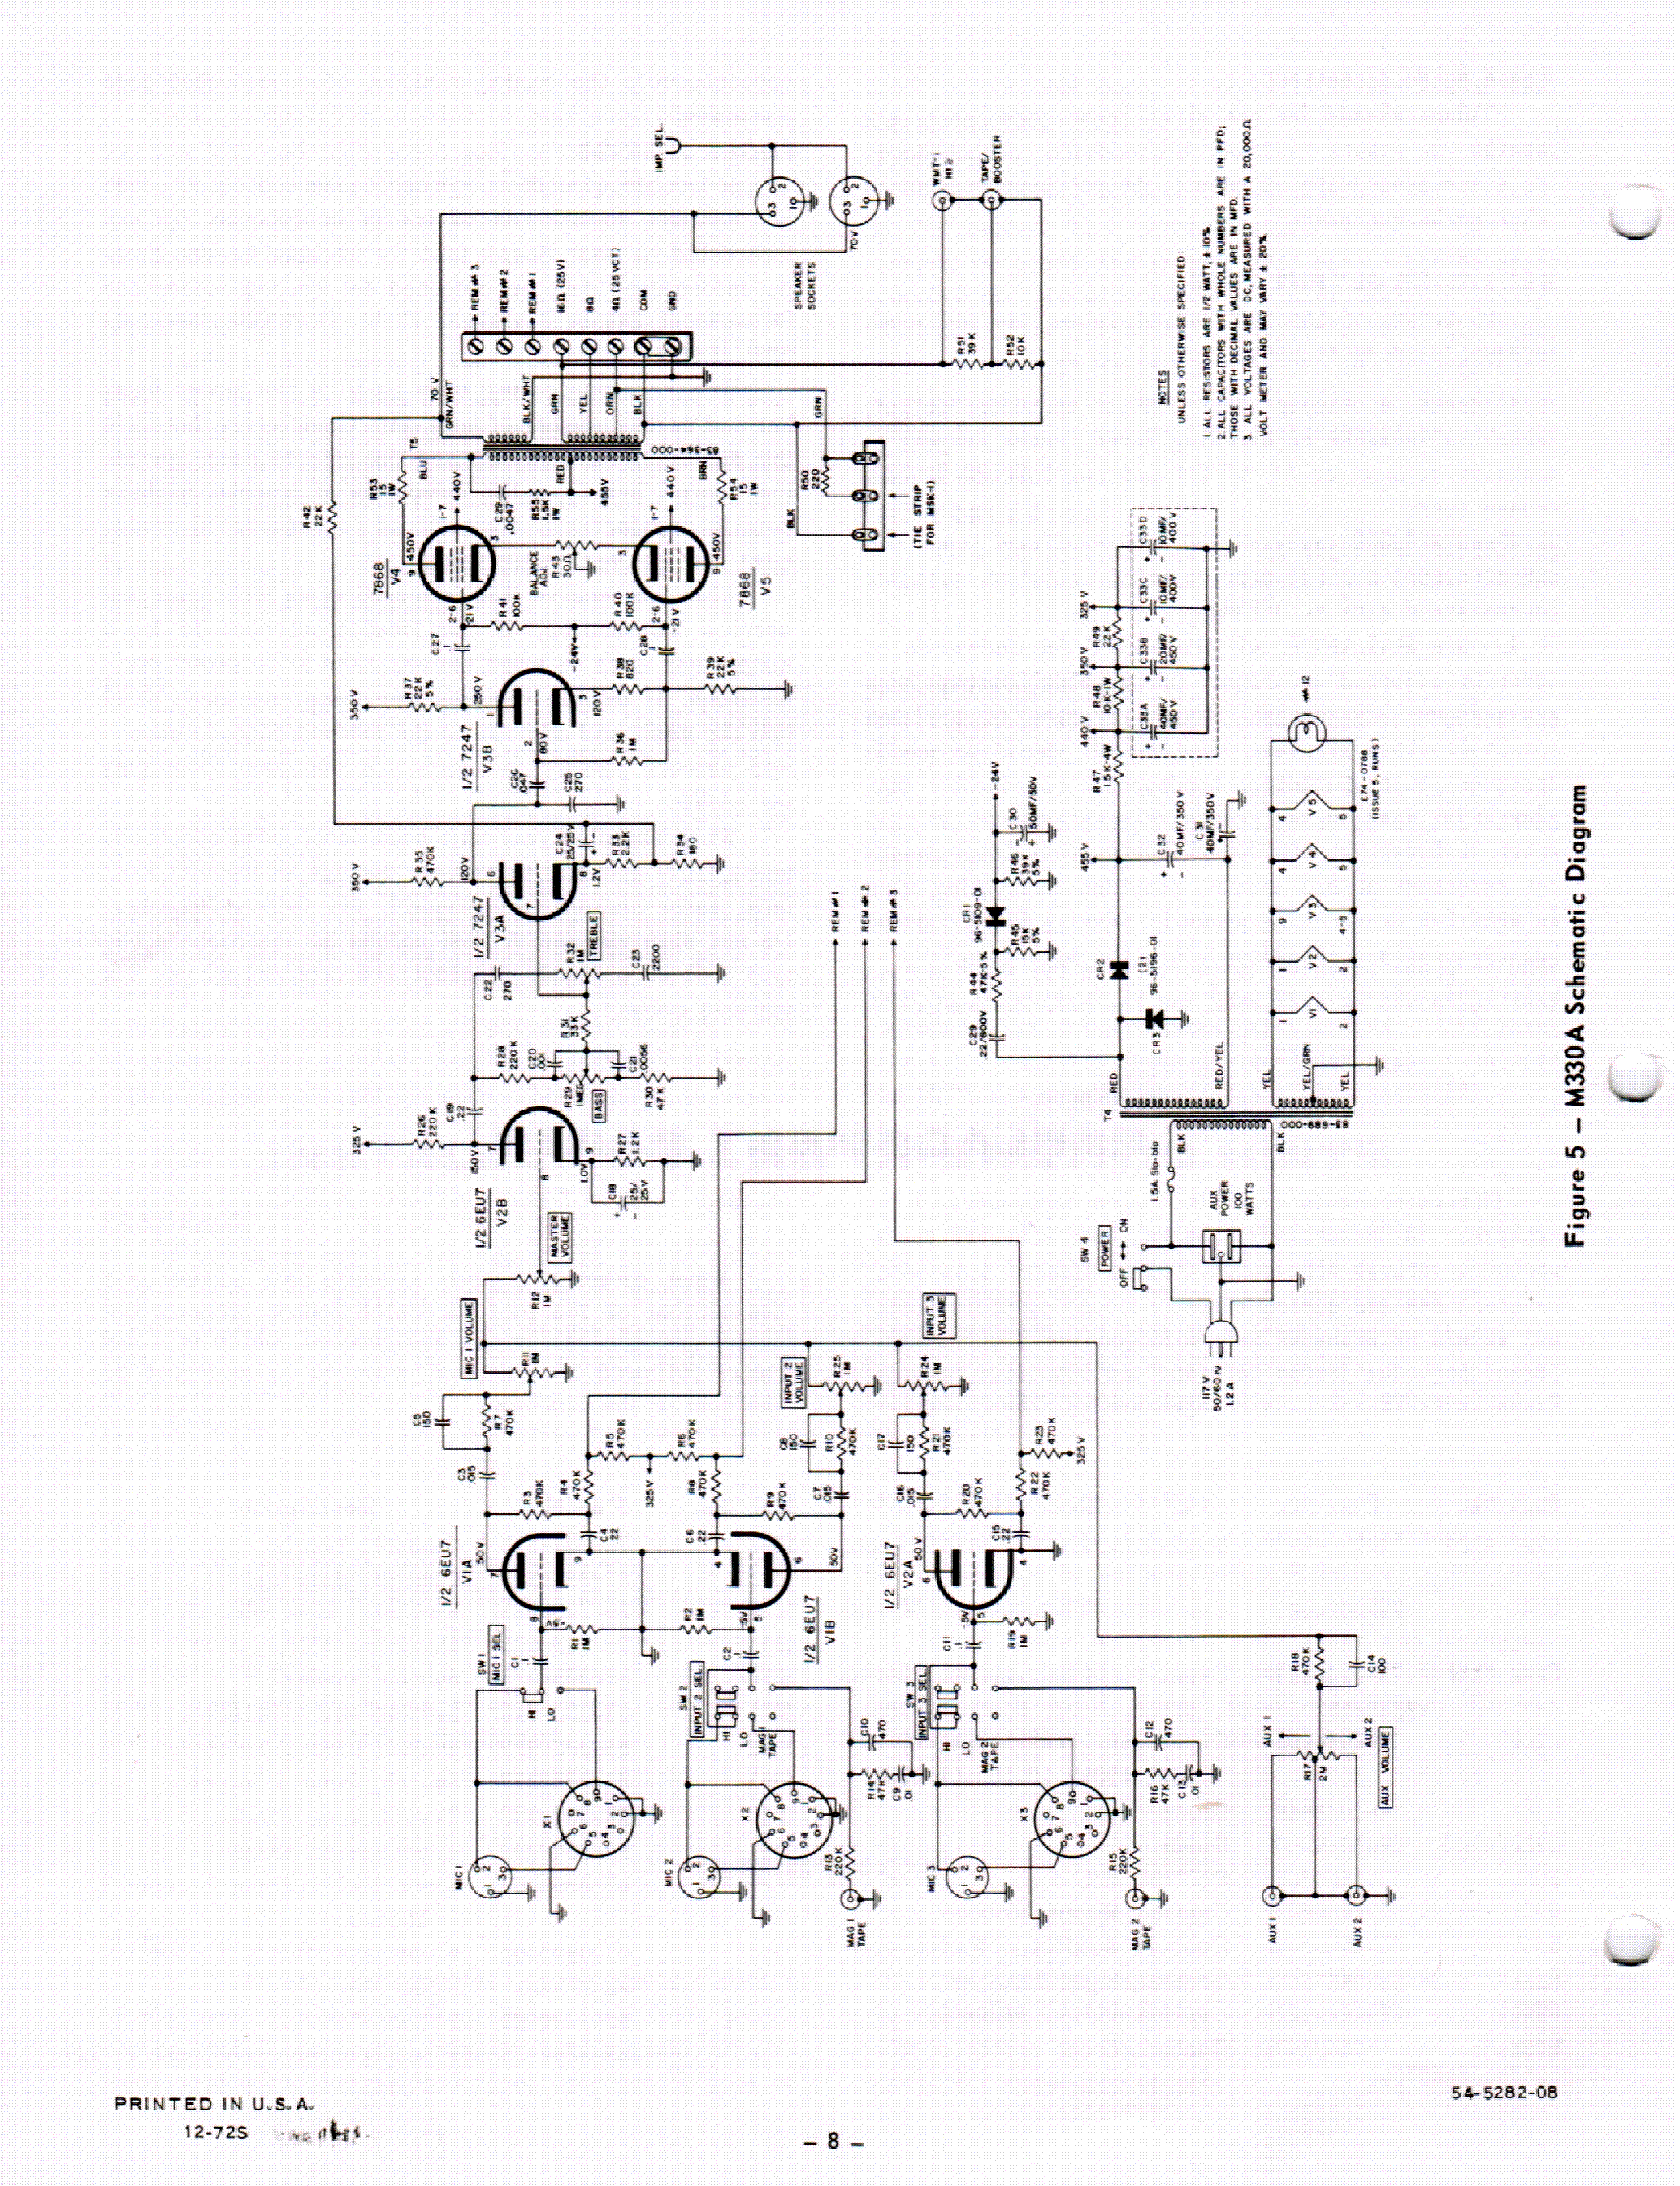 3 5mm audio jack wiring diagram